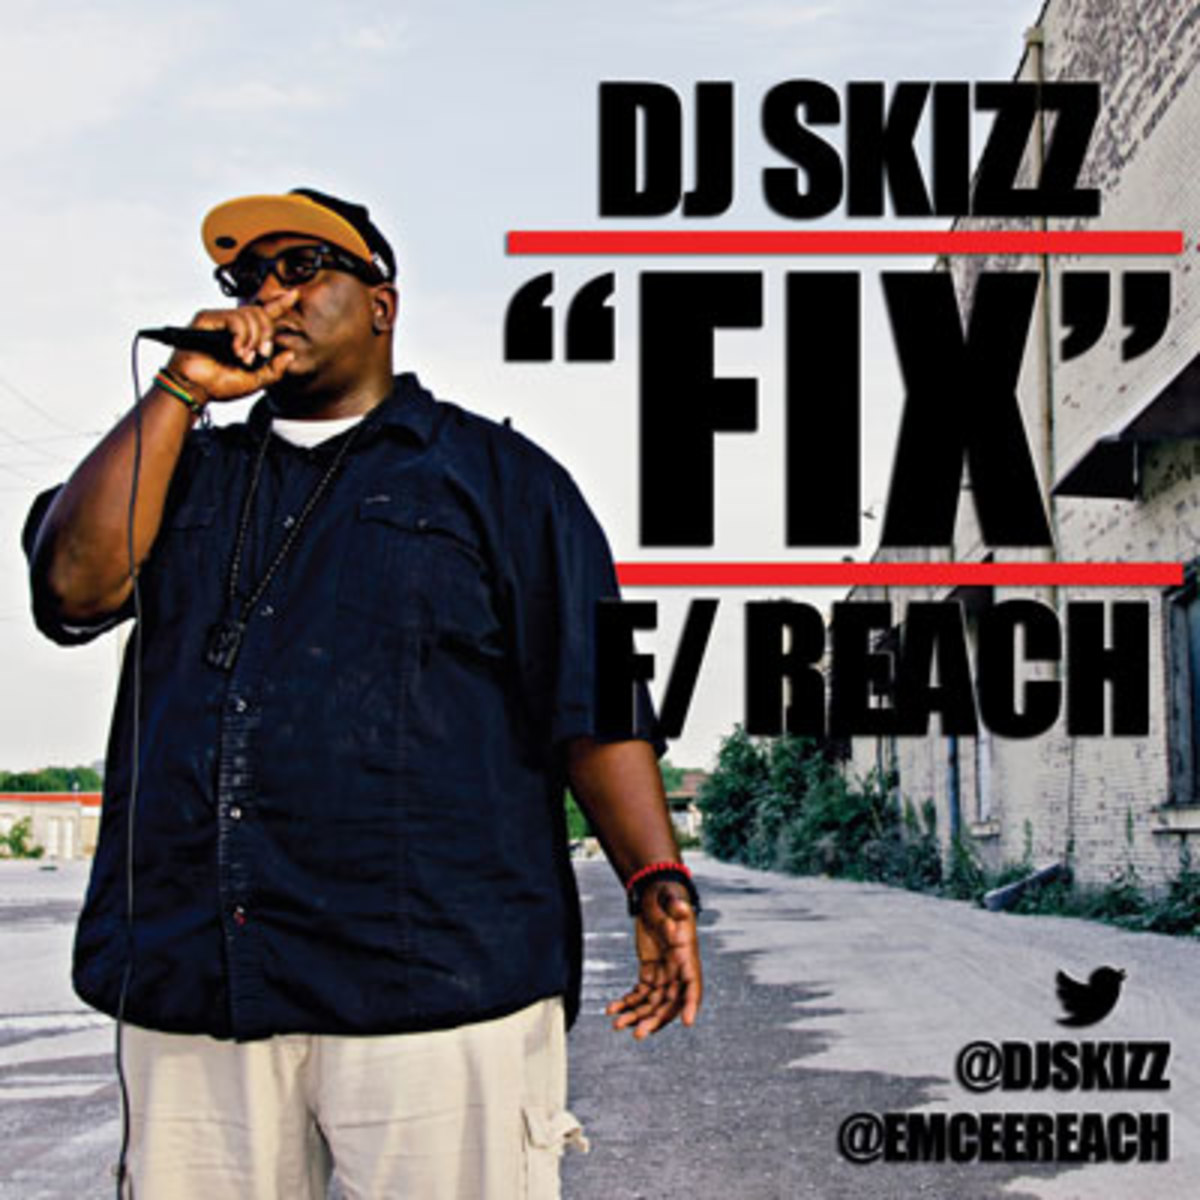 djskizz-fix.jpg